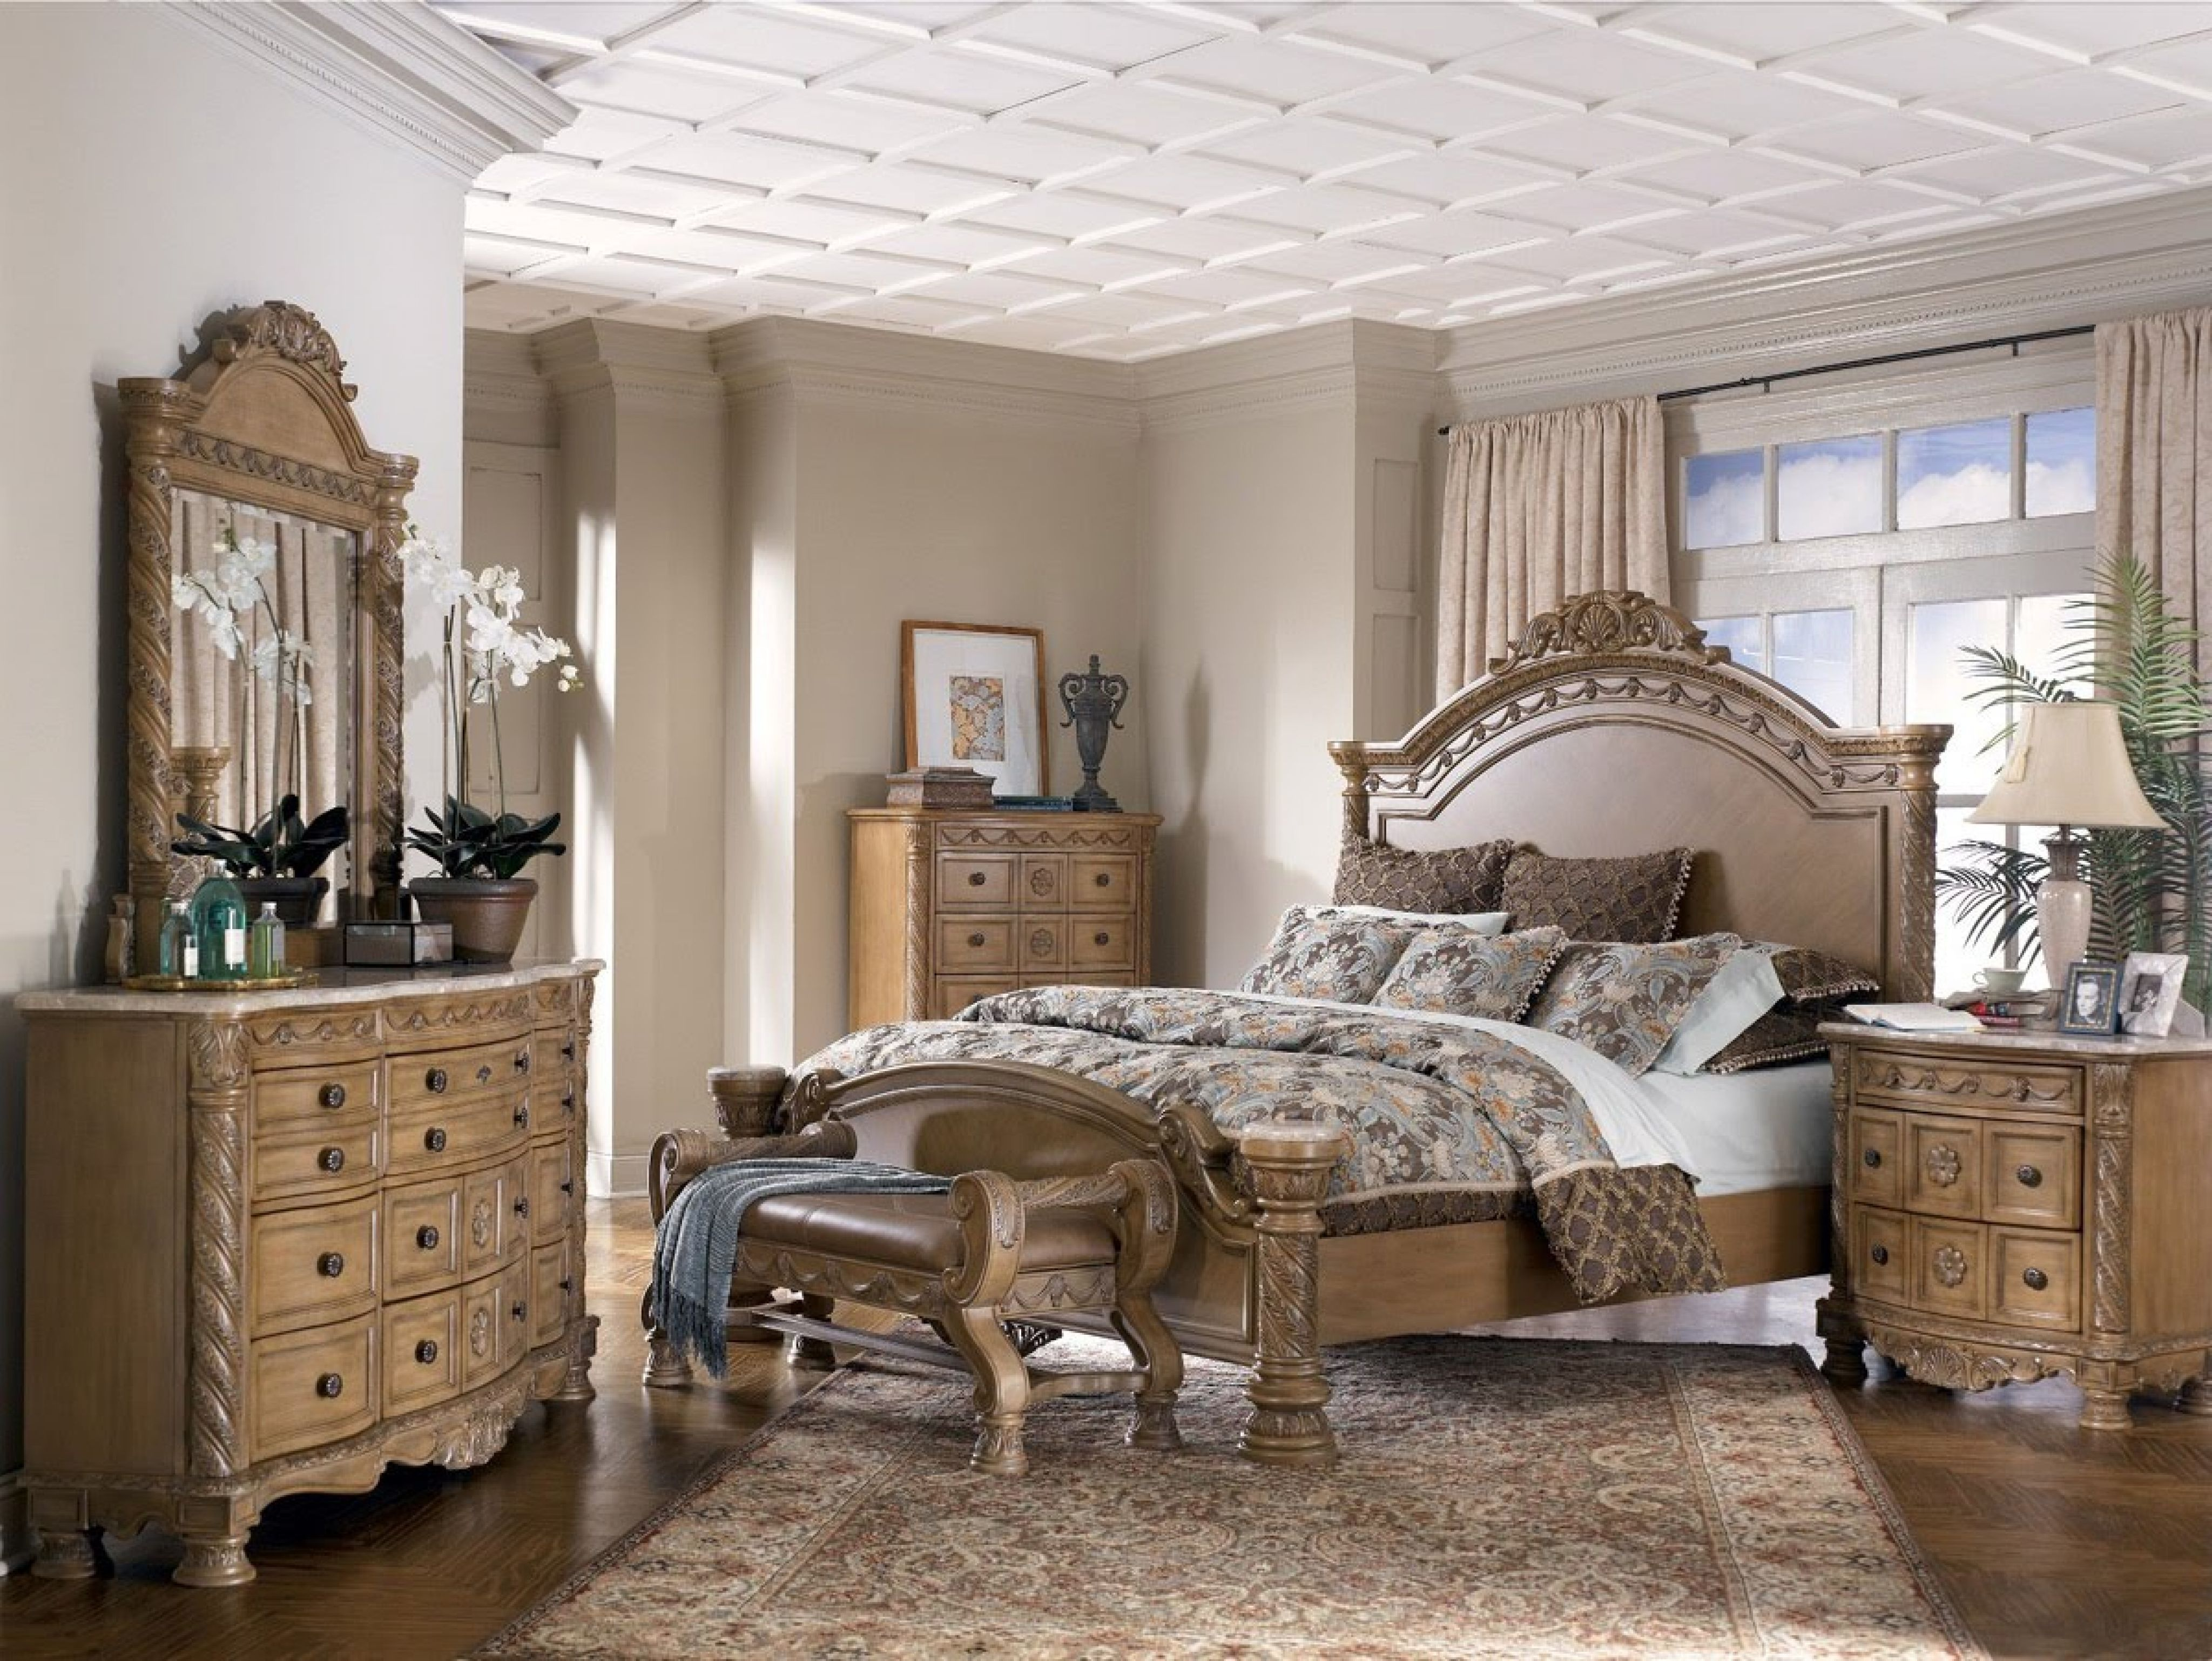 Go green with our new reclaimed teak western decor furniture available - Ashley Furniture Bedroom Set Interior Paint Color Trends Check More At Http